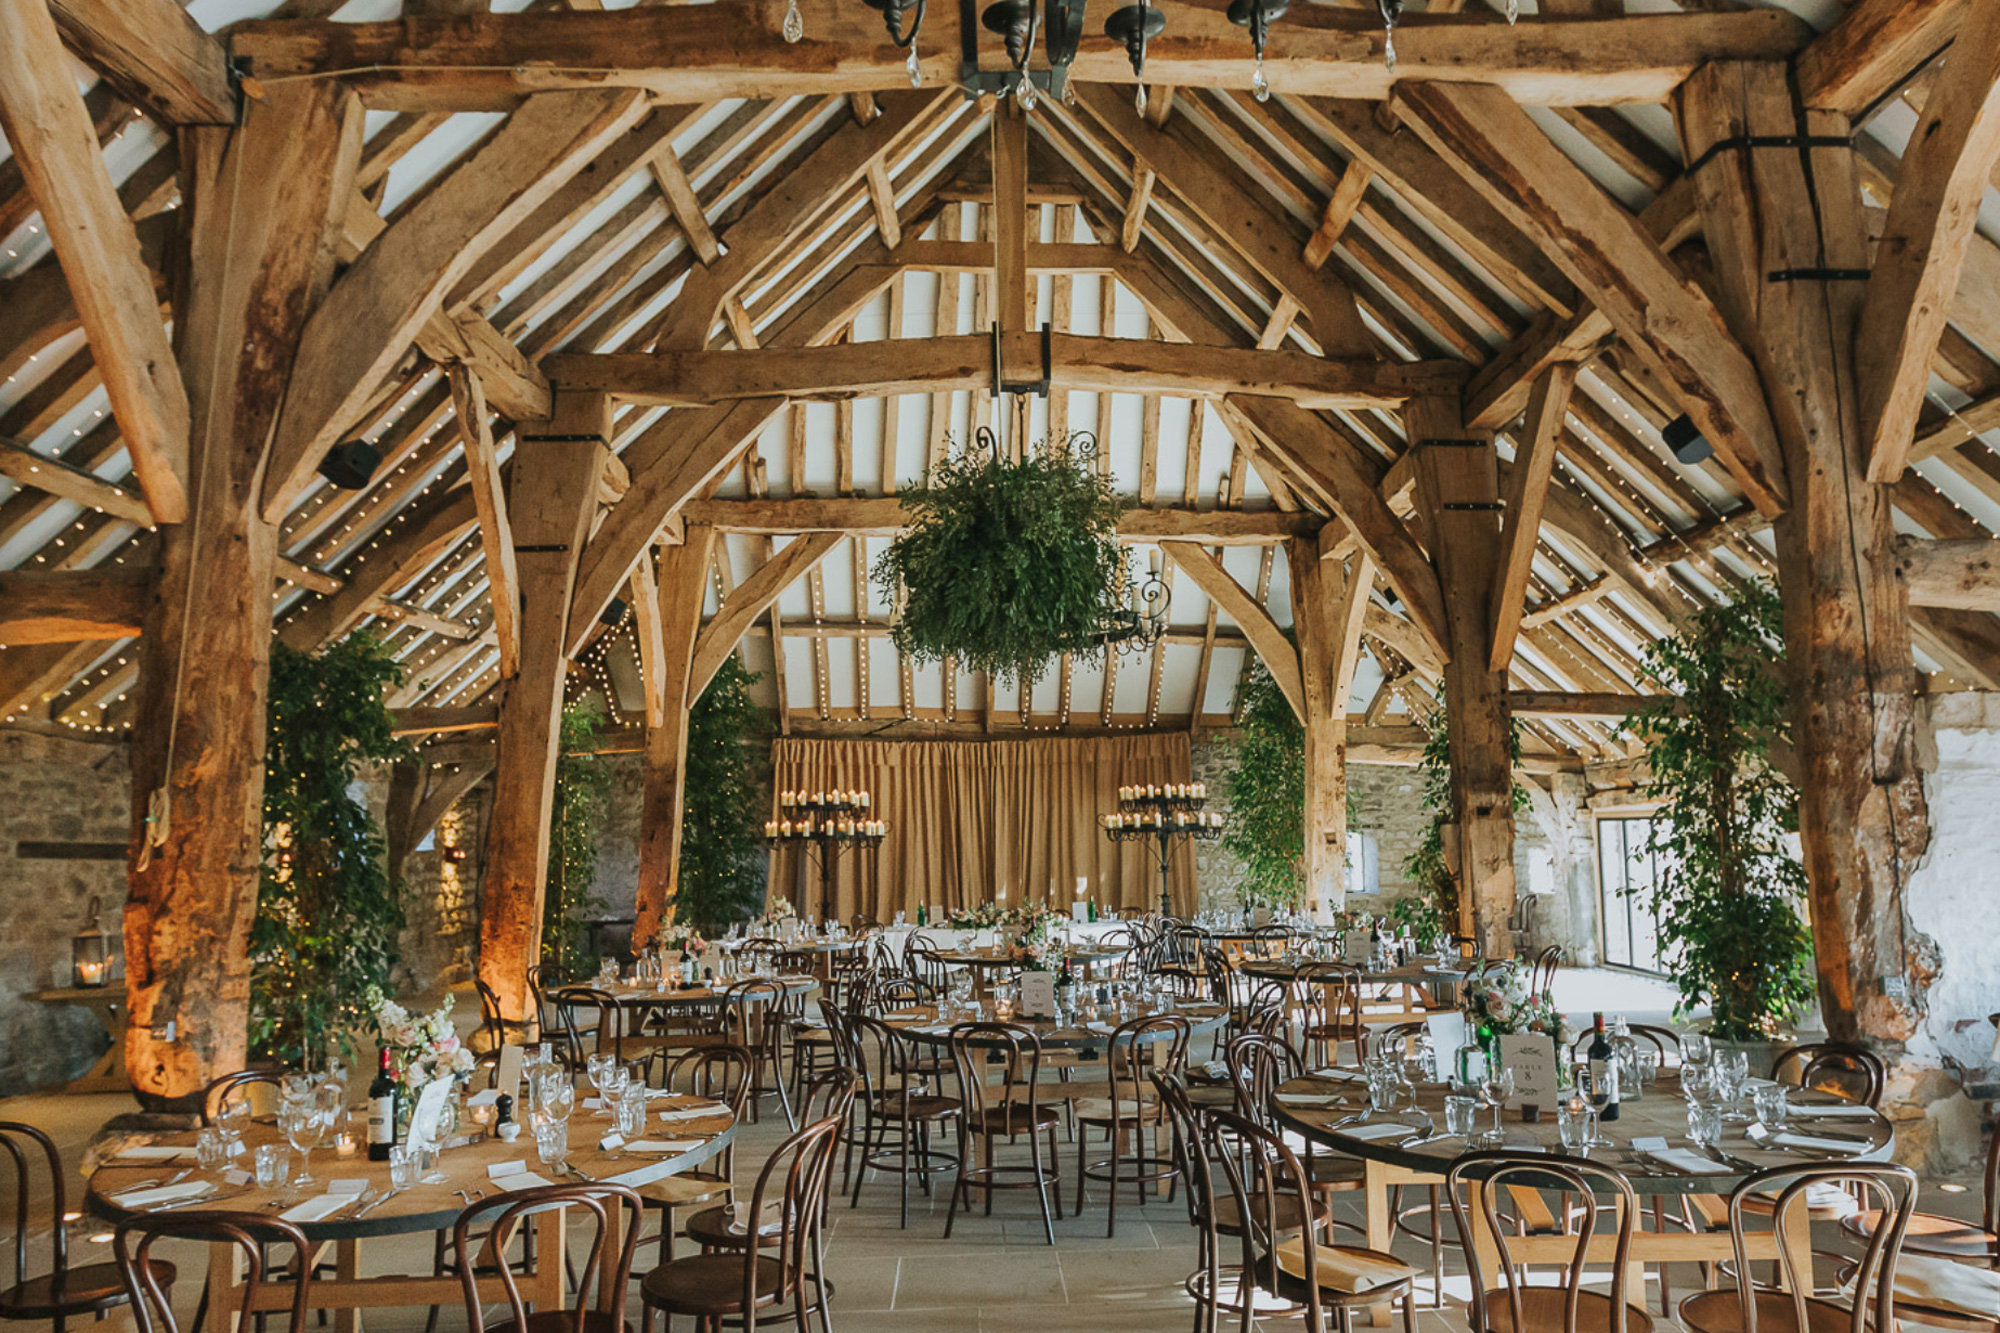 Round dining tables set for wedding reception in large oak beam farmhouse building